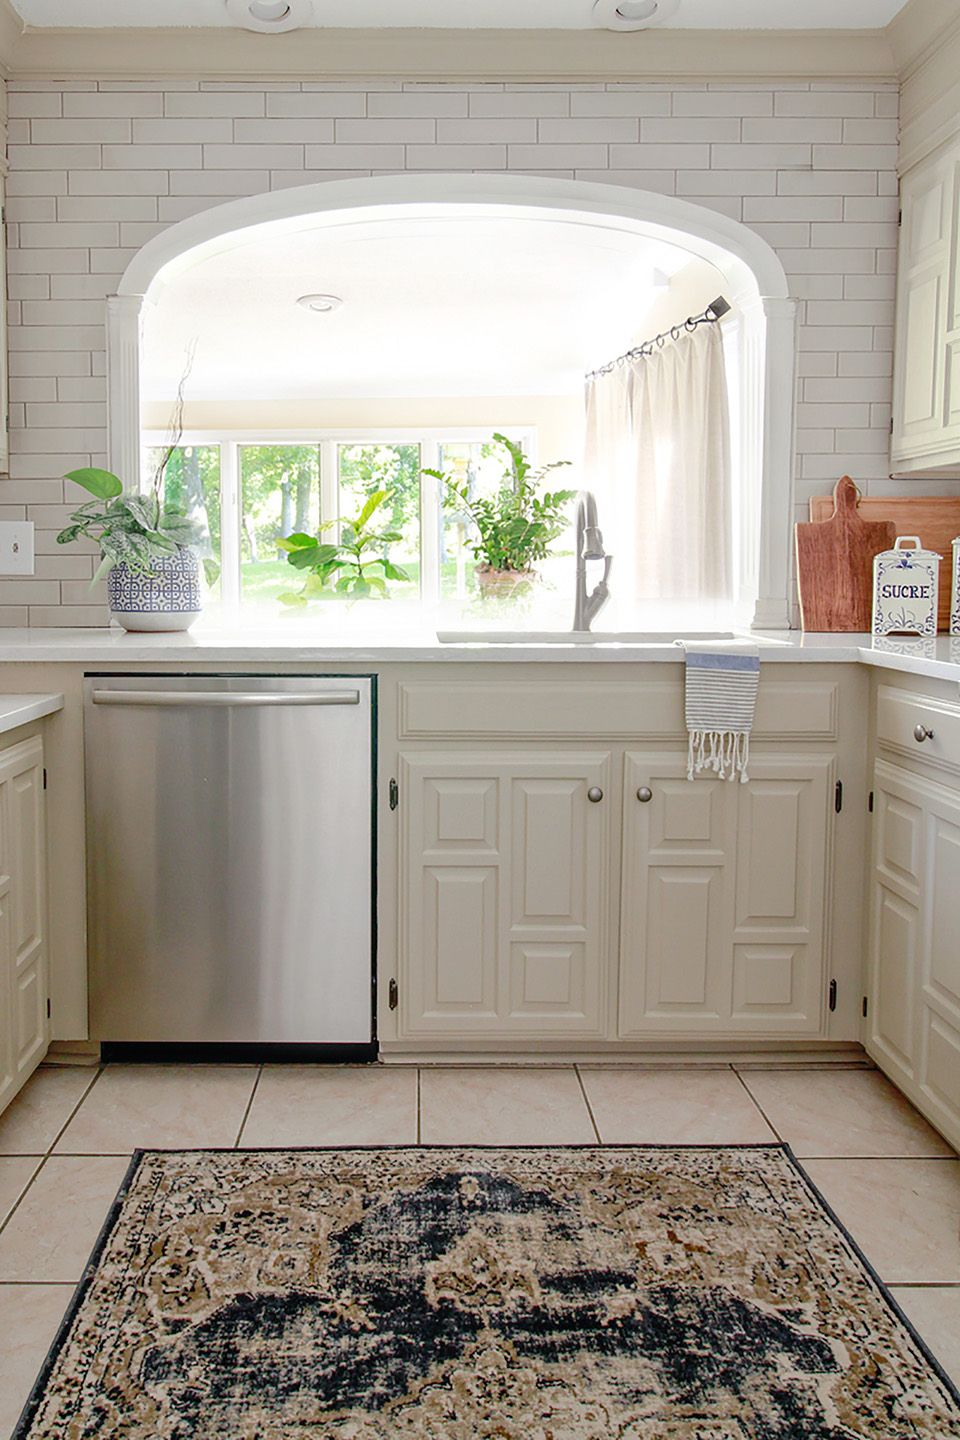 5 Low Cost Ideas For A Kitchen Remodel On A Budget In 2020